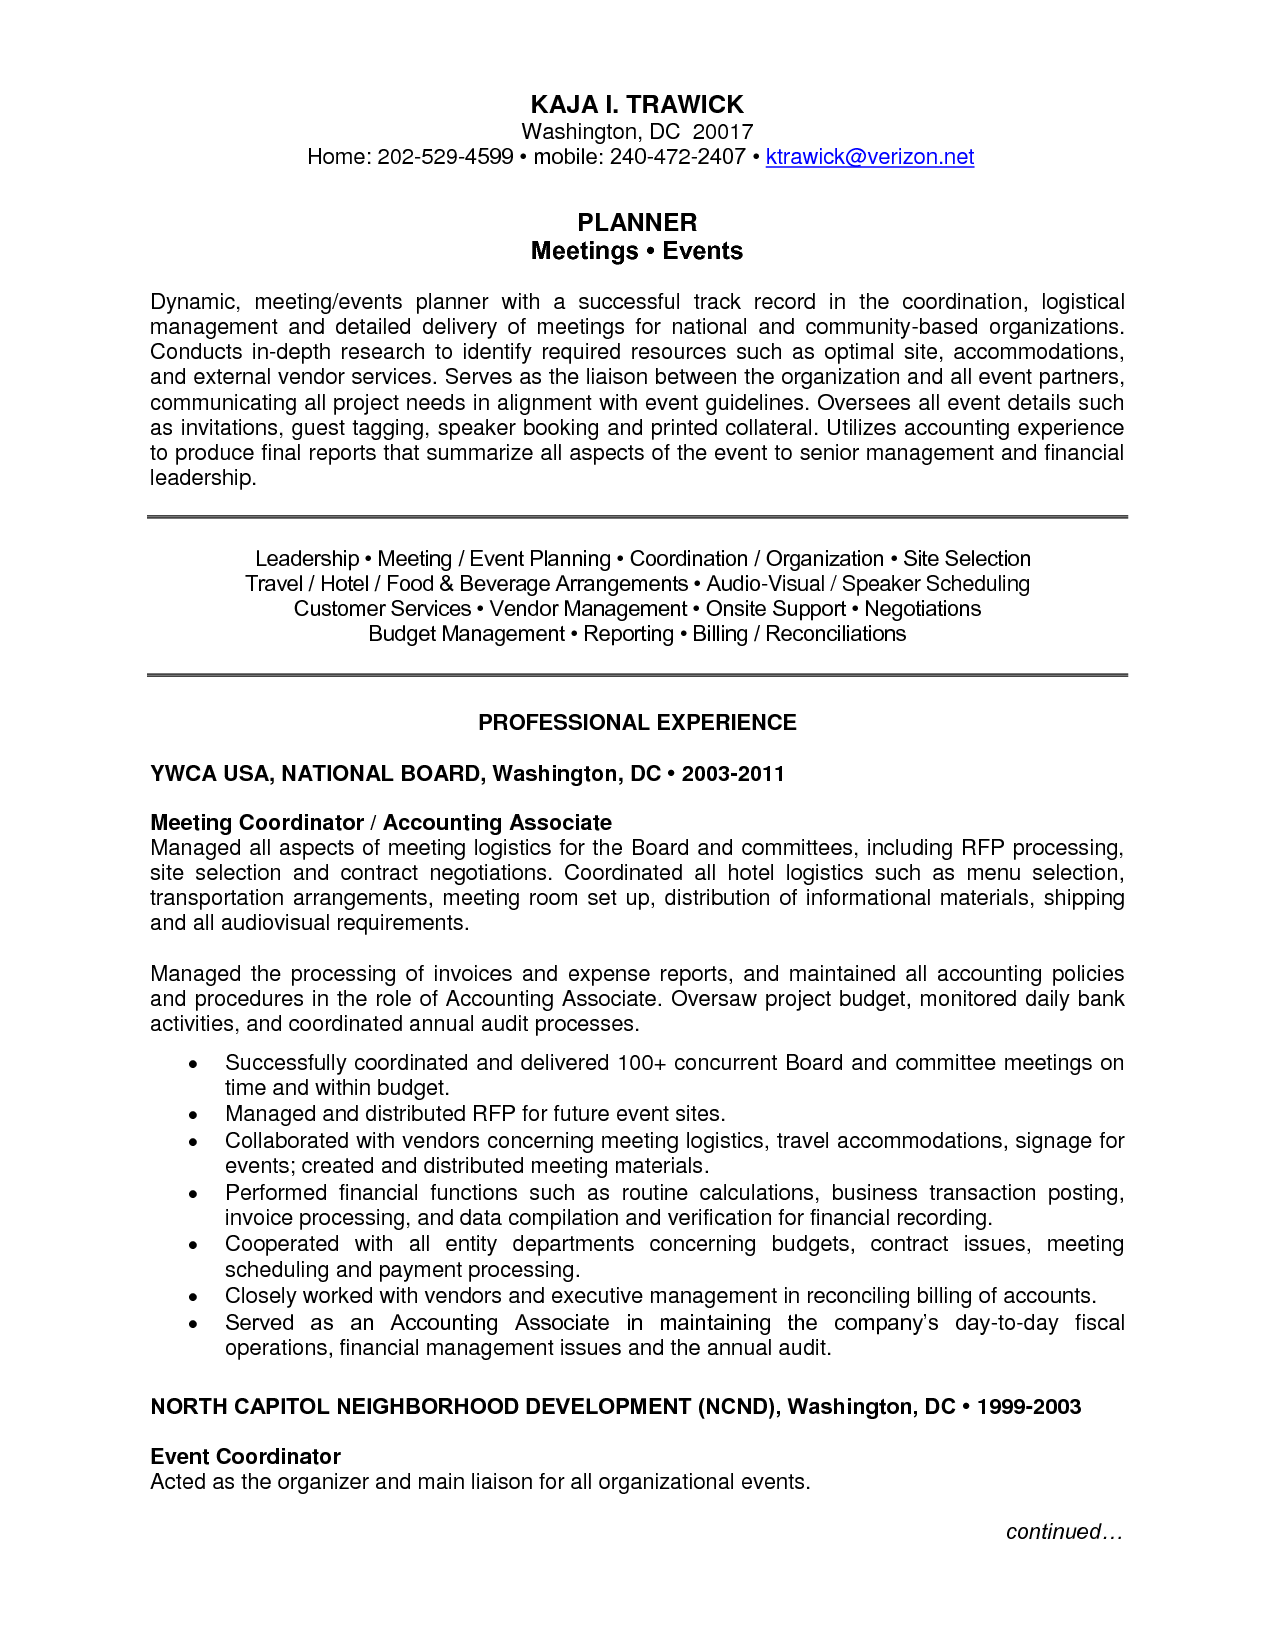 Living In A Country Essay Essay Writing About Tennis Cover Letter